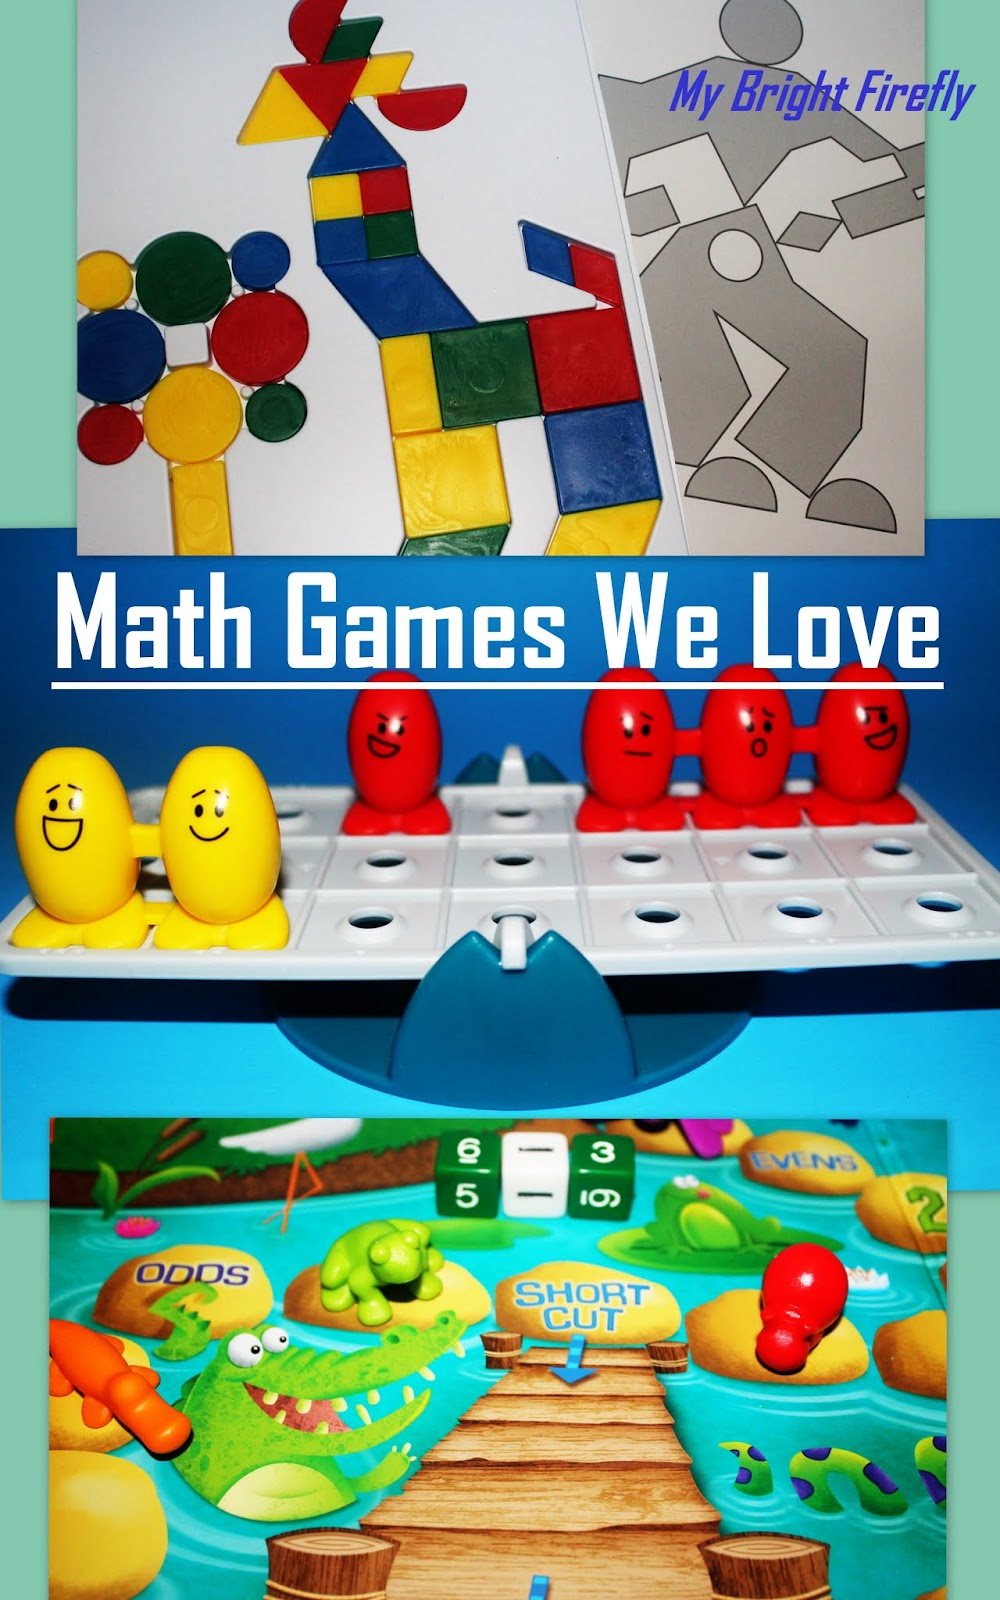 My Bright Firefly: Math Games We Love for Preschool to Second Grade